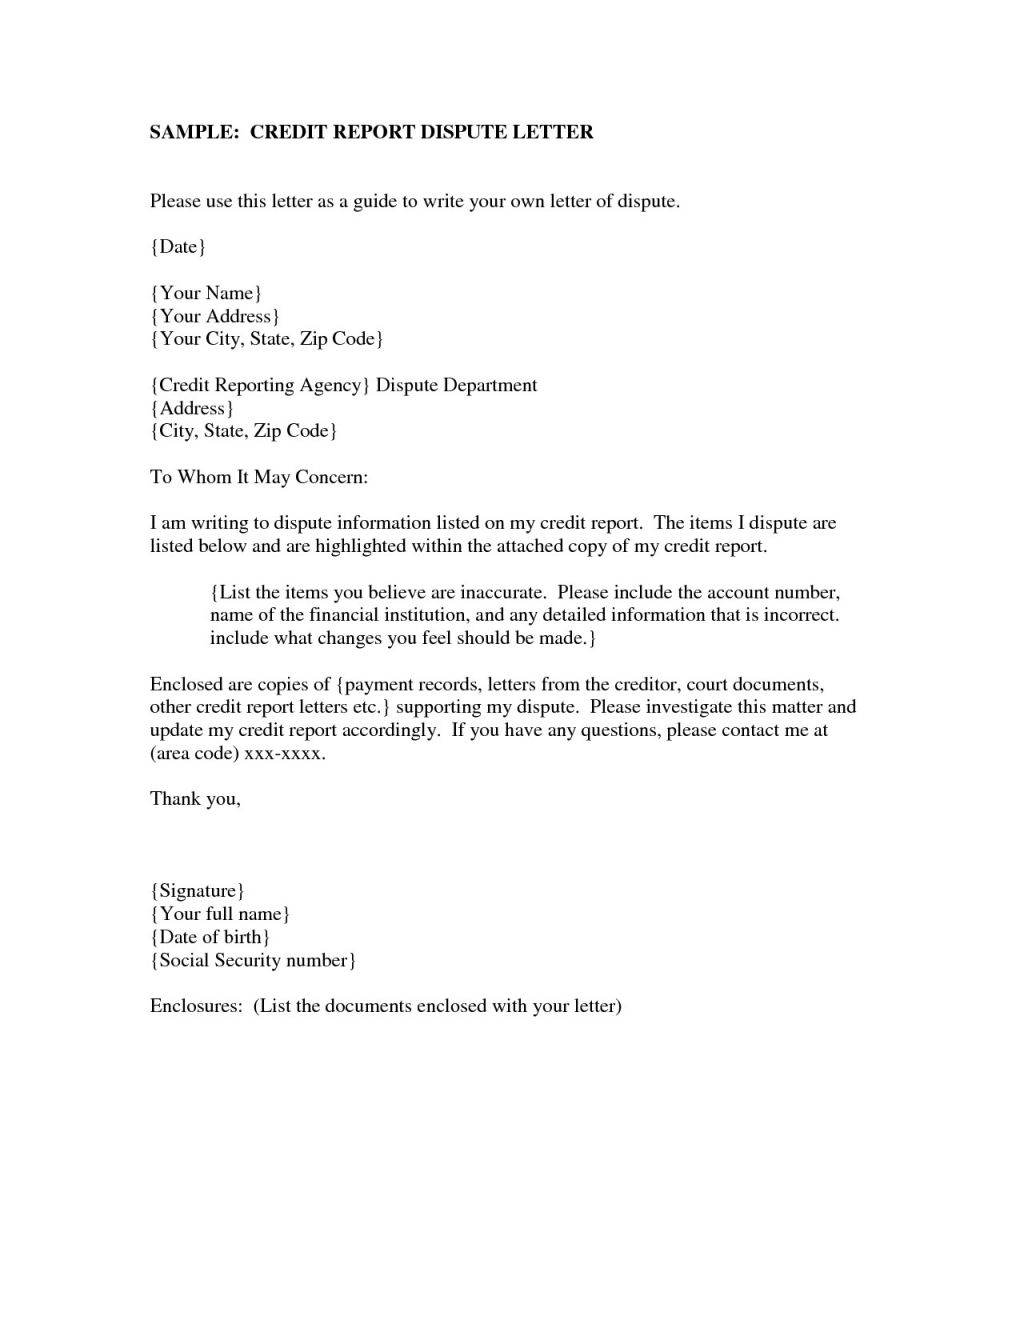 Credit Card Dispute Letter Template - Well Known Sample Dispute Letter to Credit Bureau Kb33